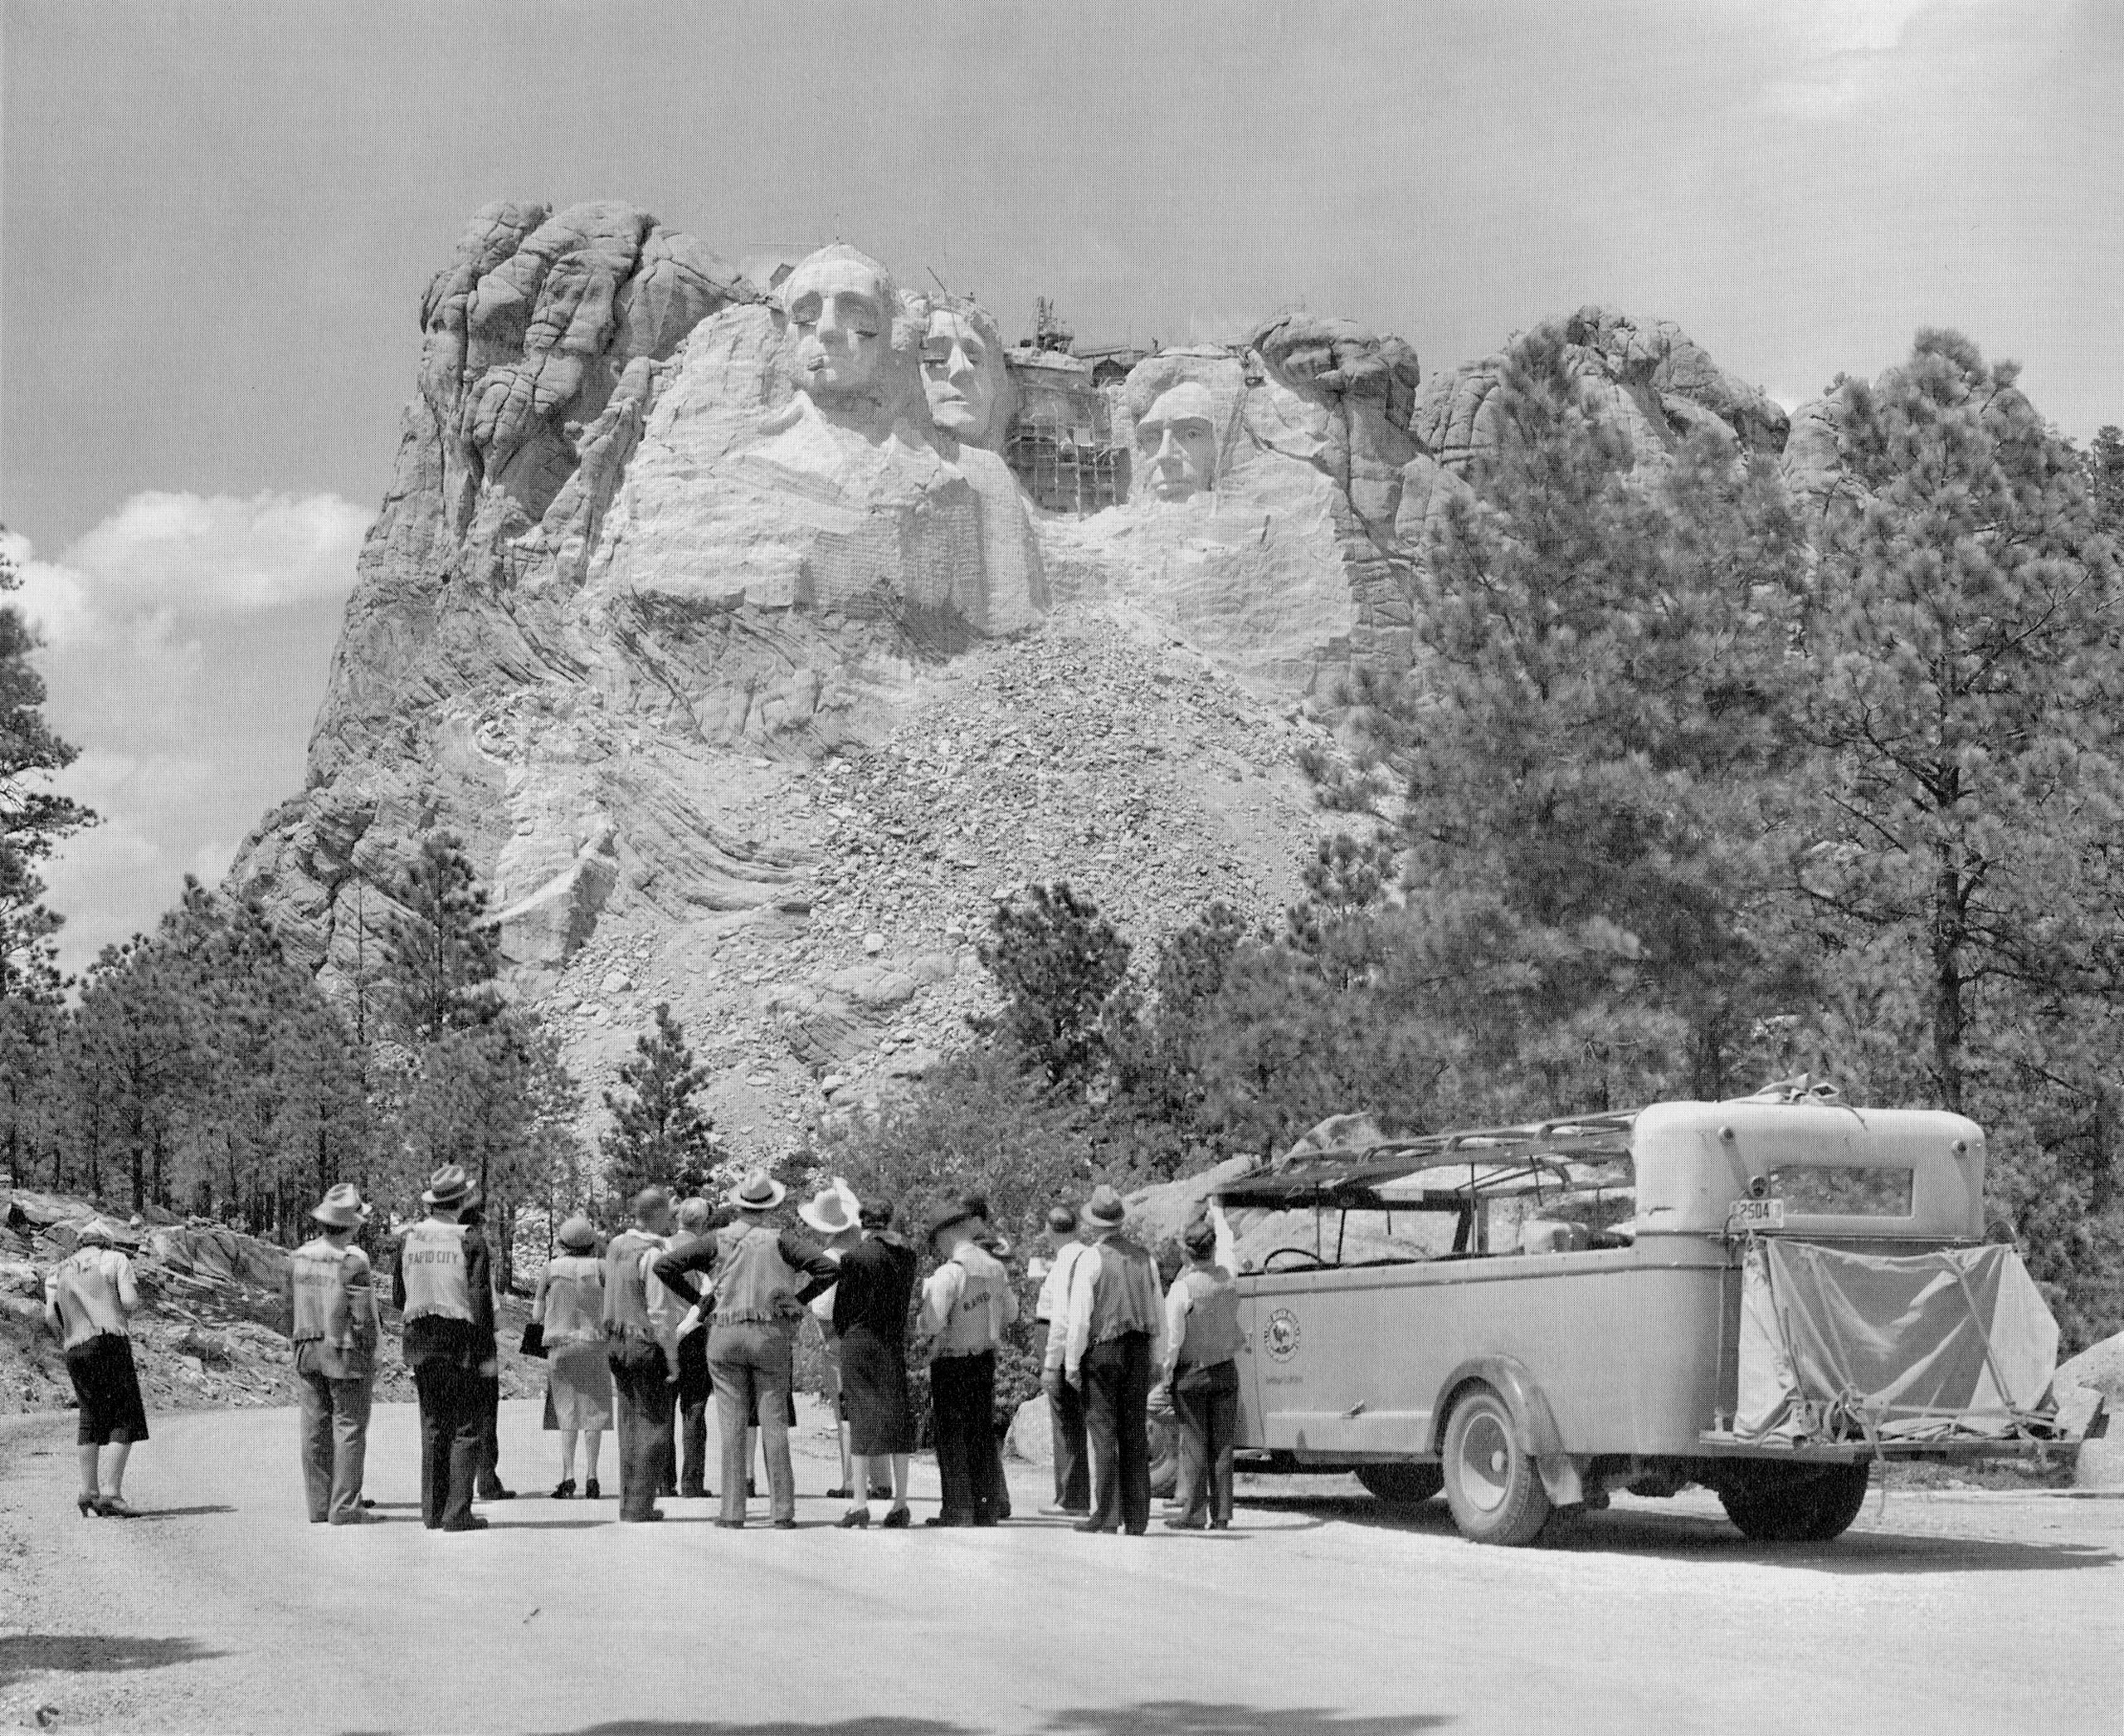 Tourists stopped to view Mount Rushmore while it was still under construction, c. 1930s.